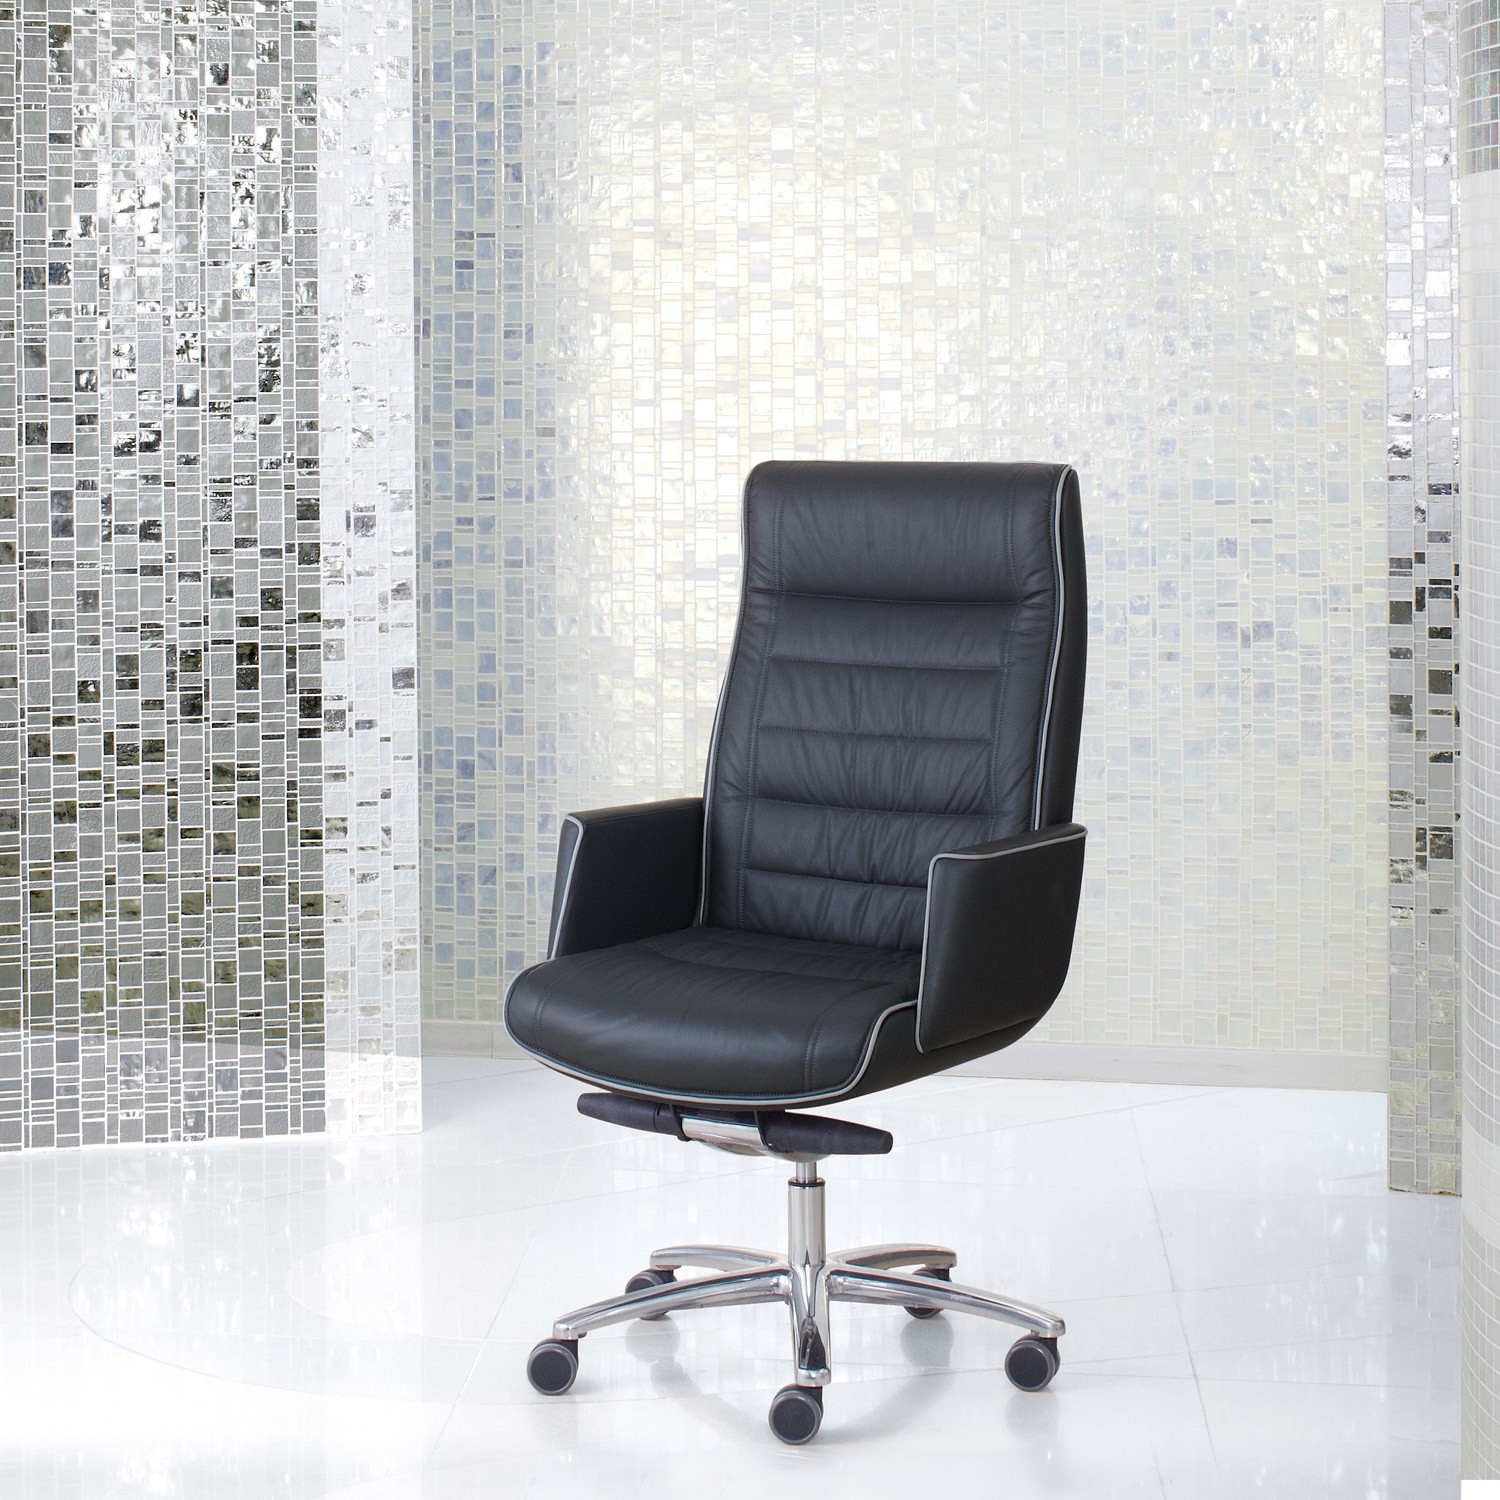 Mr Big Management Office Chair